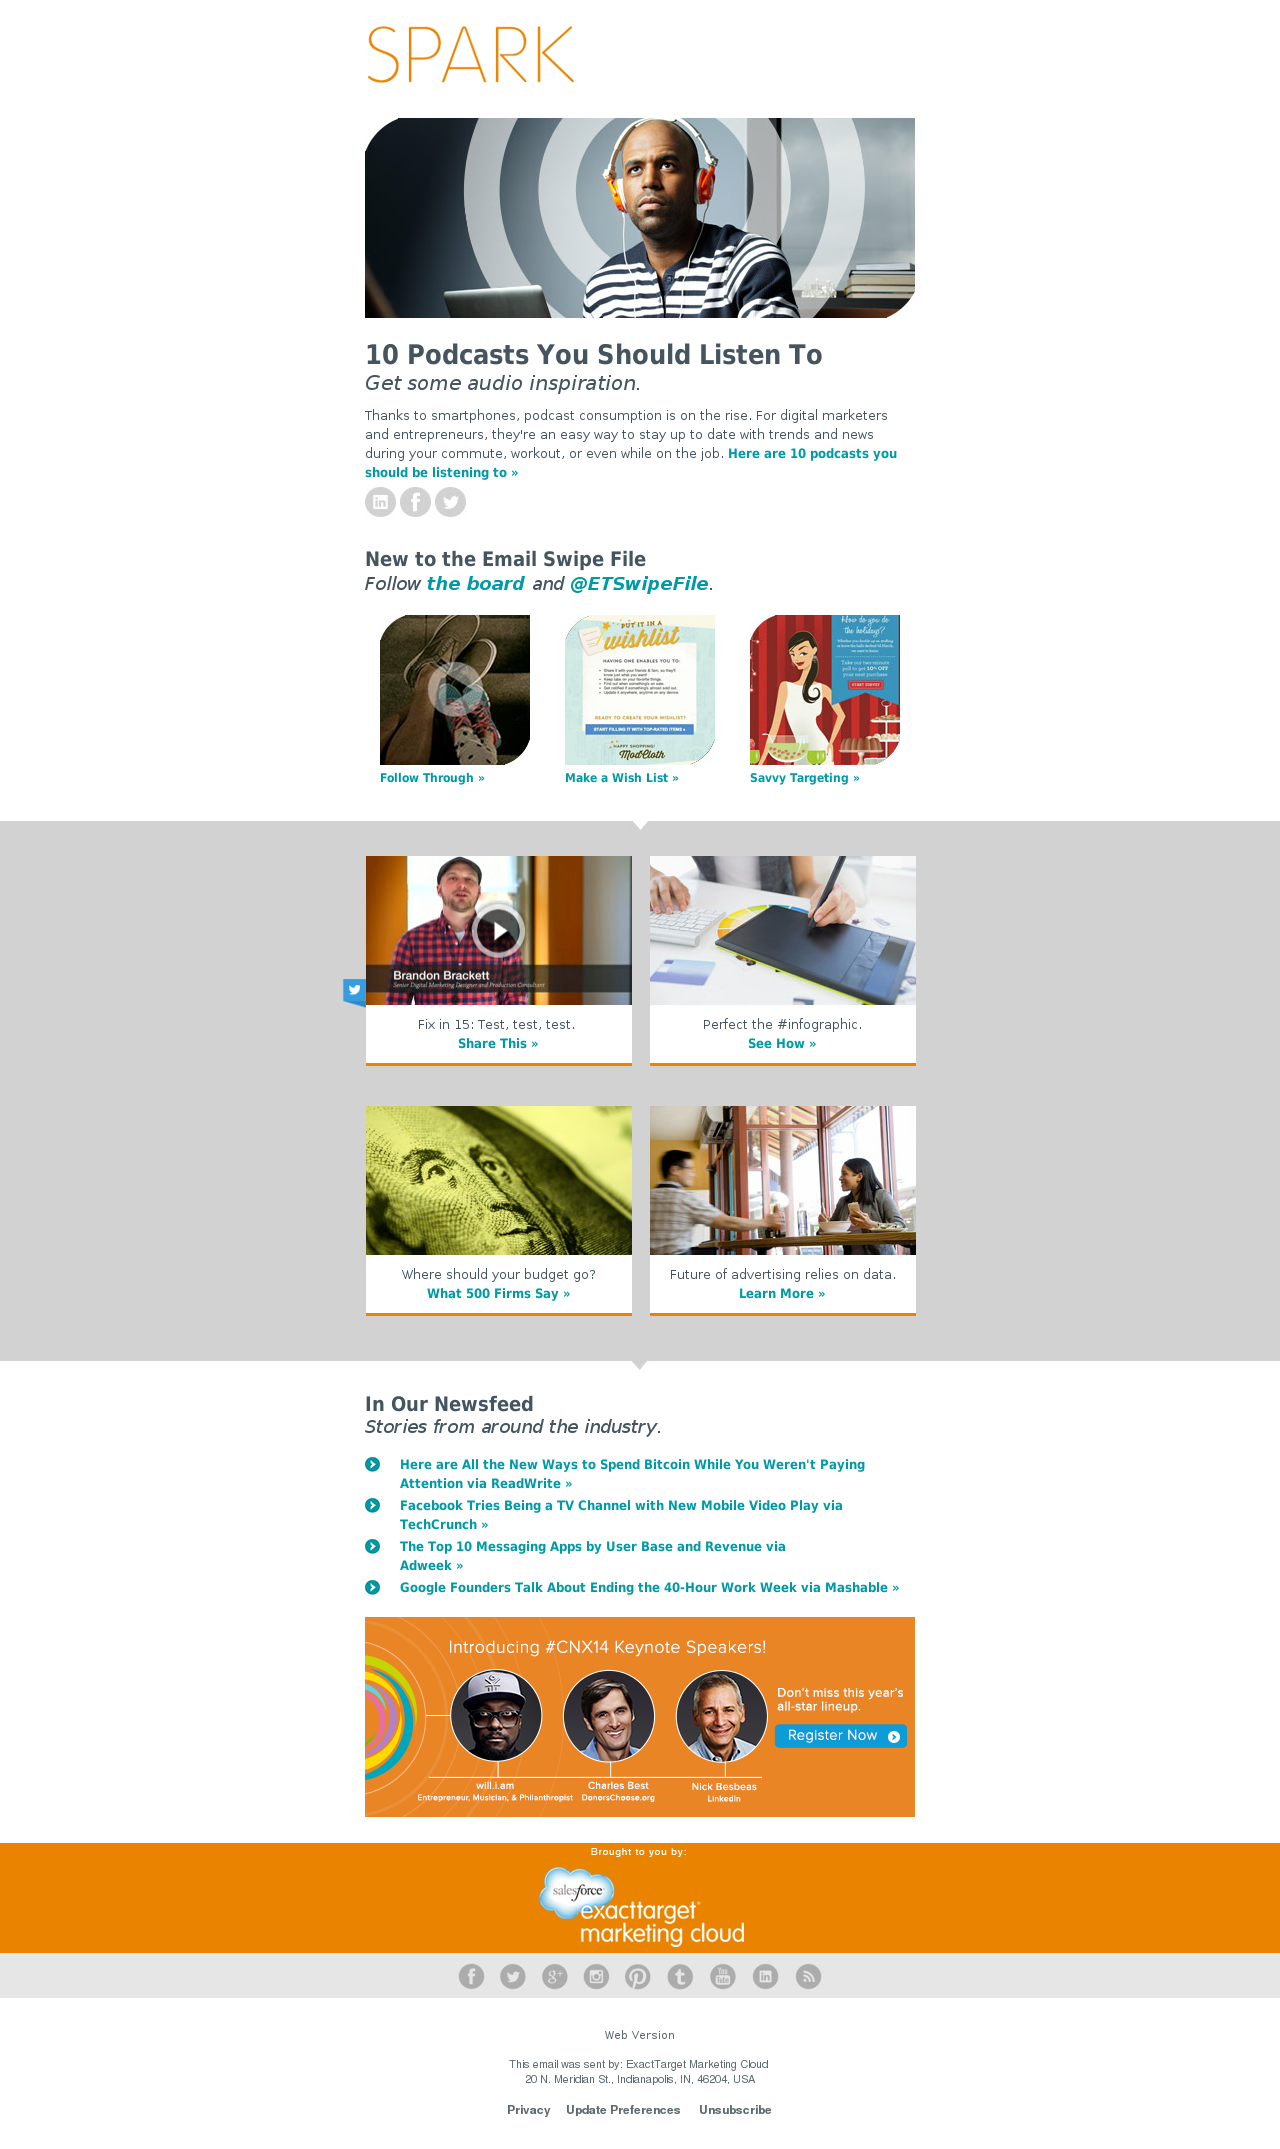 Sample B2B email marketing newsletter, ExactTarget